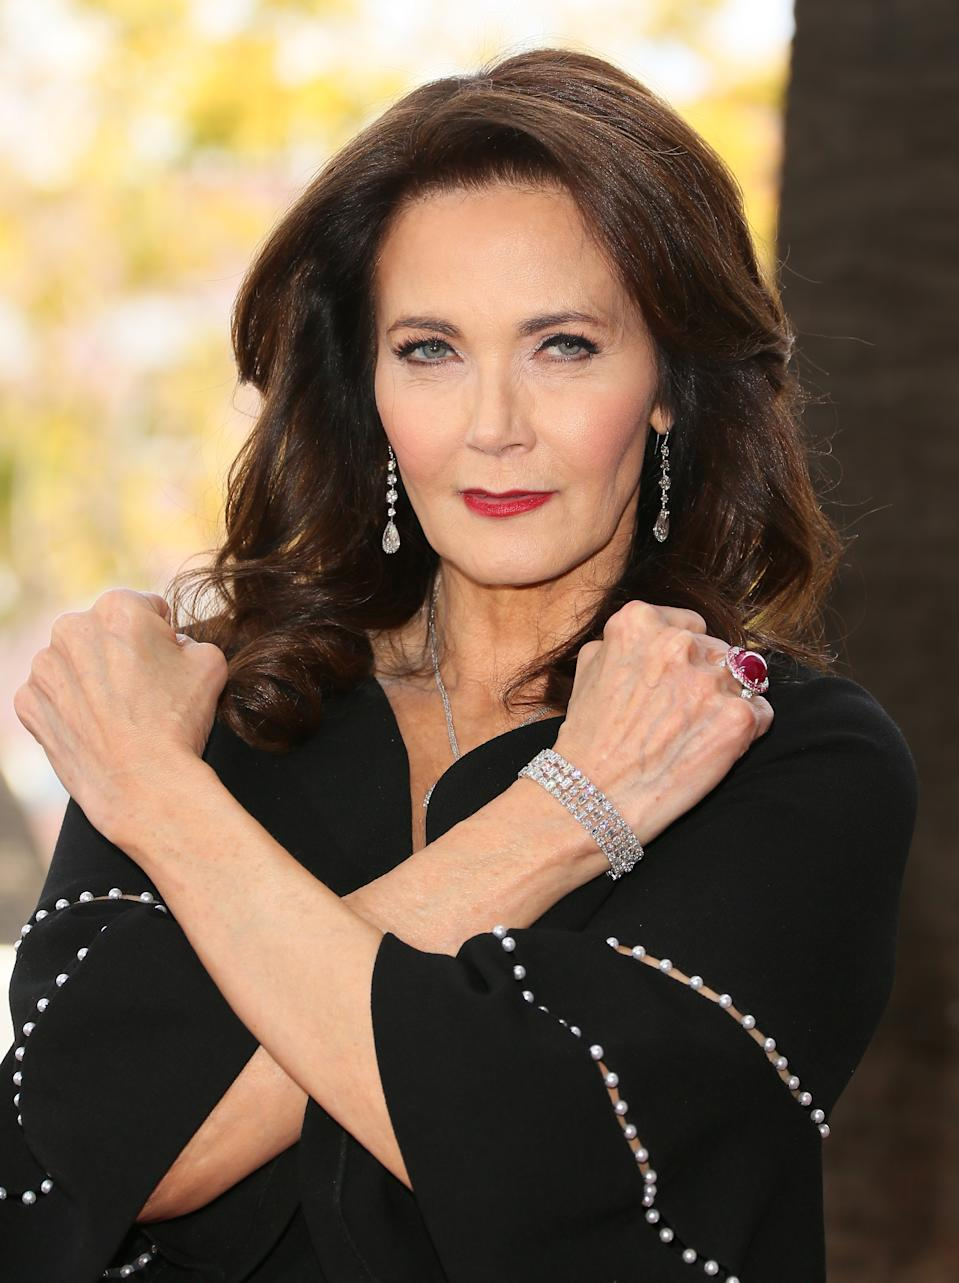 Lynda Carter en el 2018. (Photo by JB Lacroix/WireImage)